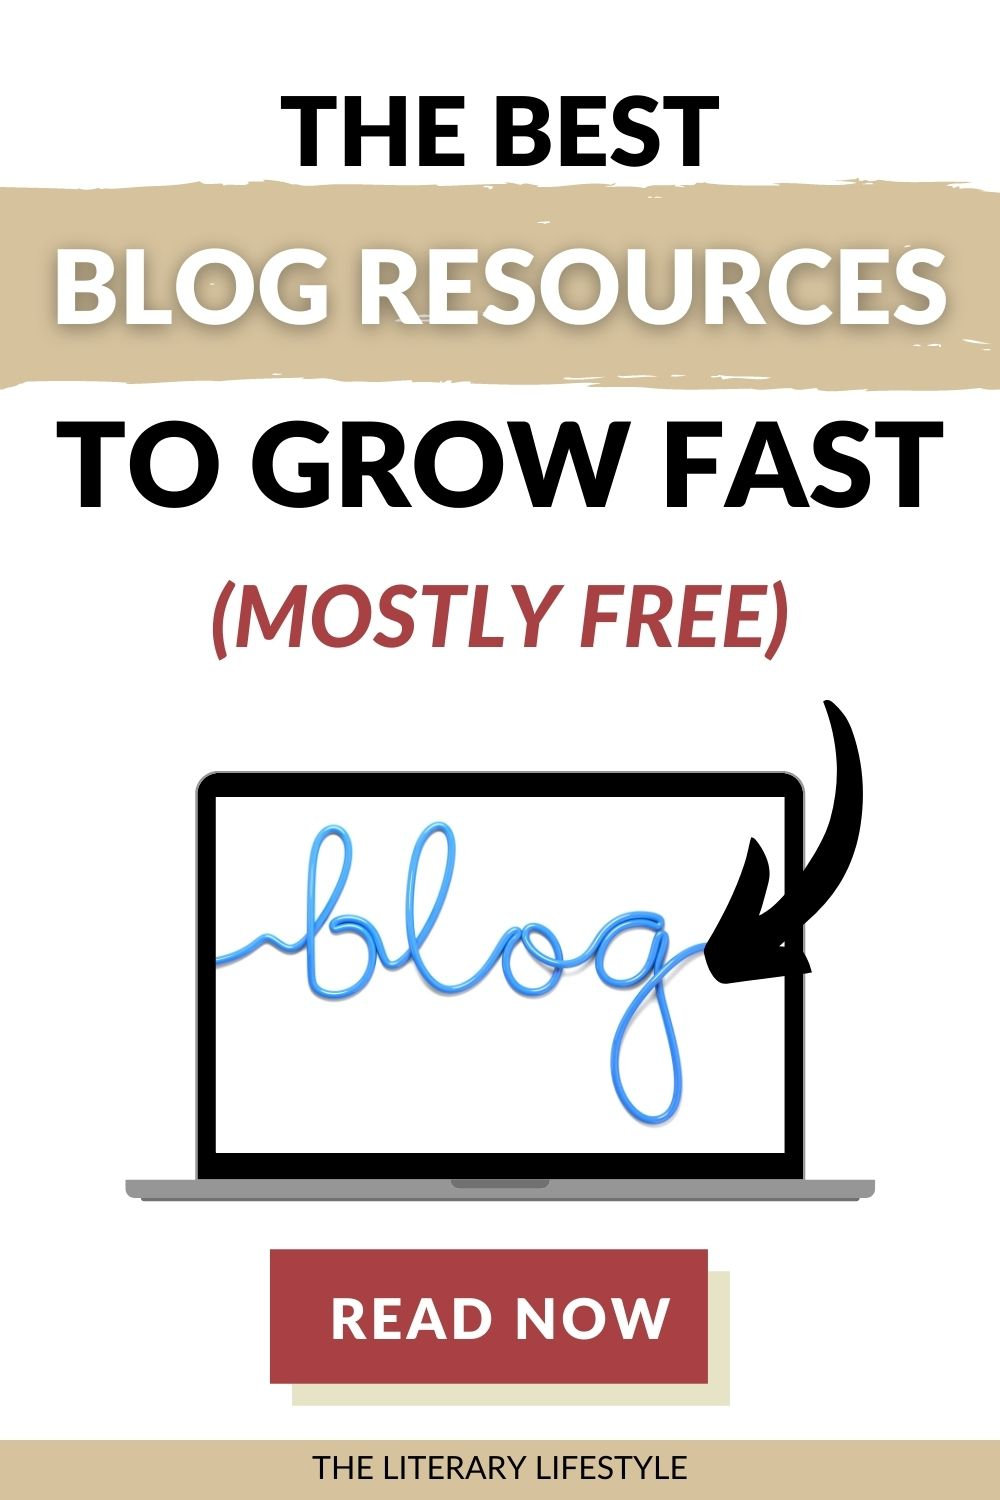 BEST BLOG RESOURCES THAT ARE MOSTLY FREE